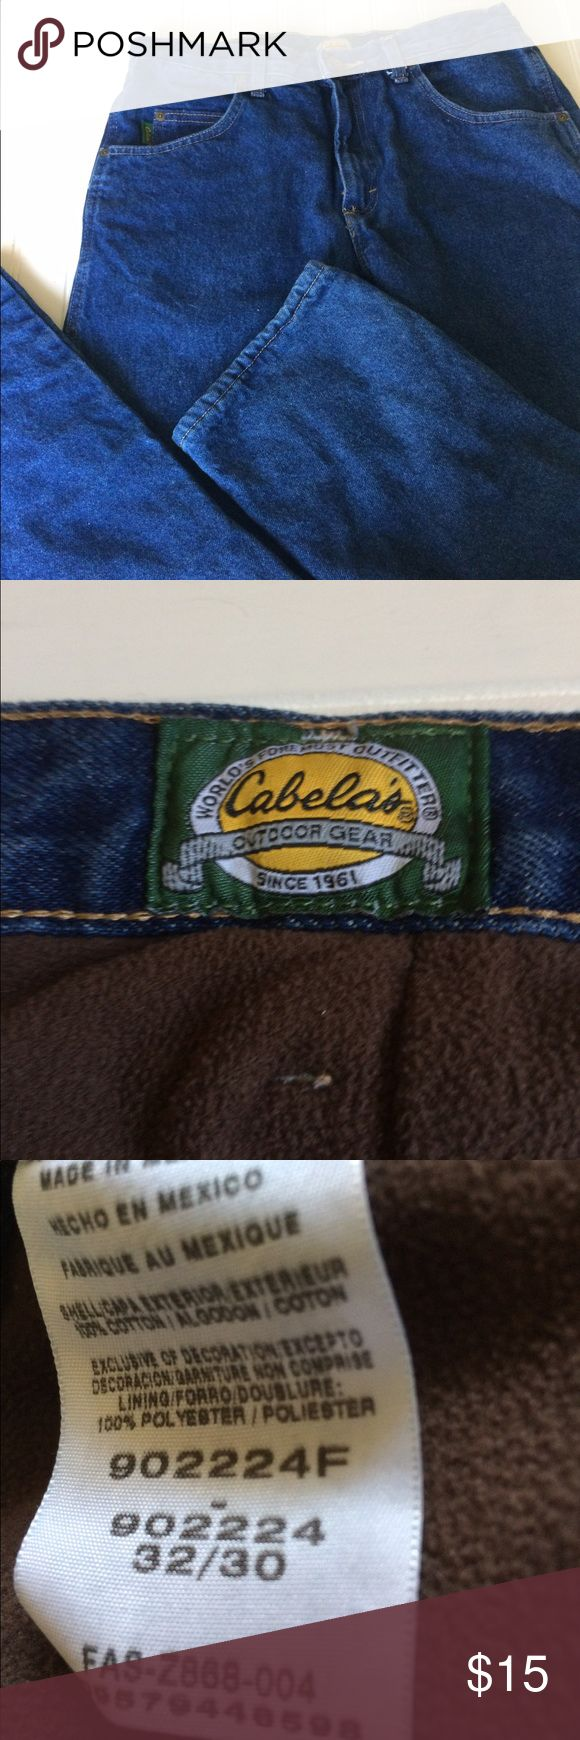 Cabelas flannel lined jeans. Flannel lined jeans from Cabela's. Get ready for fall. Size 32/30. cabela's Jeans Straight